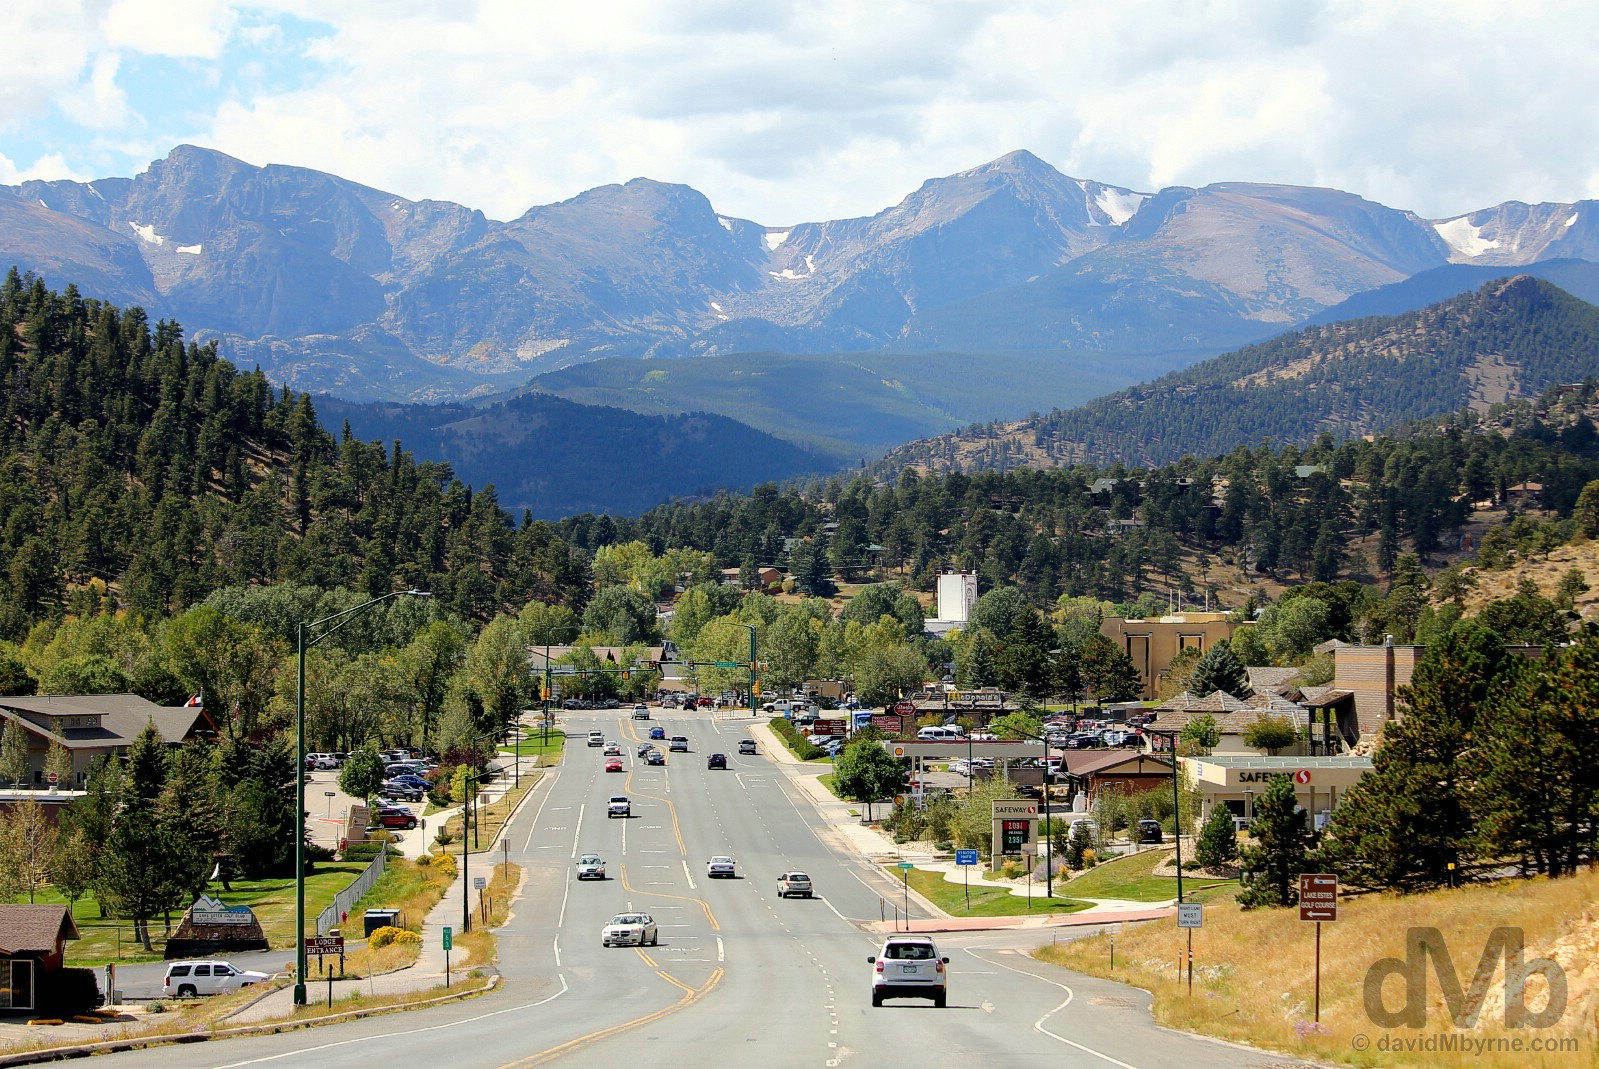 Estes Park, north-central Colorado, USA. September 14, 2016.